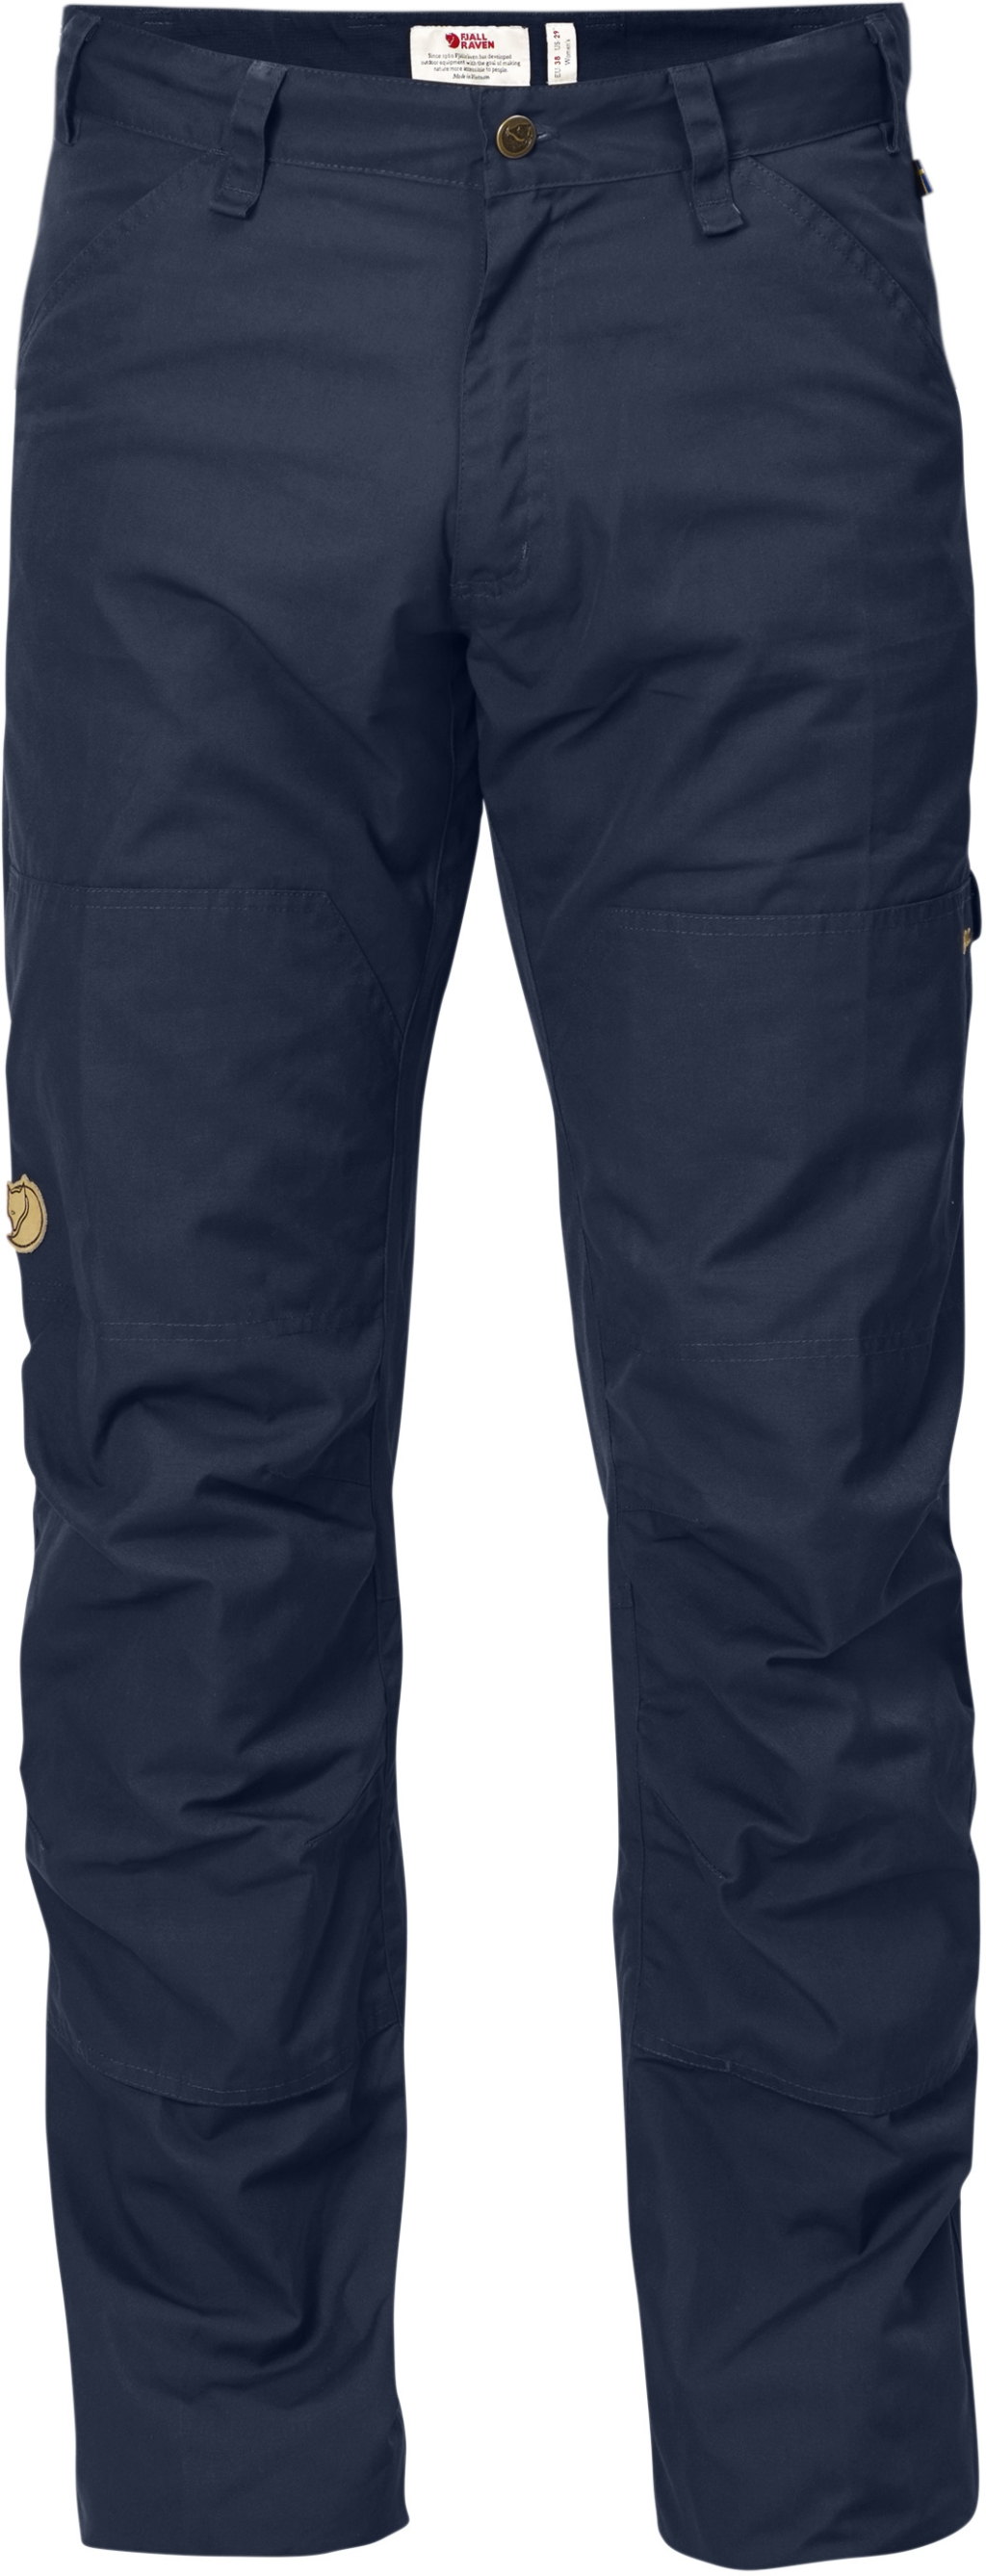 FjallRaven Barents Pro Jeans Dark Navy-30